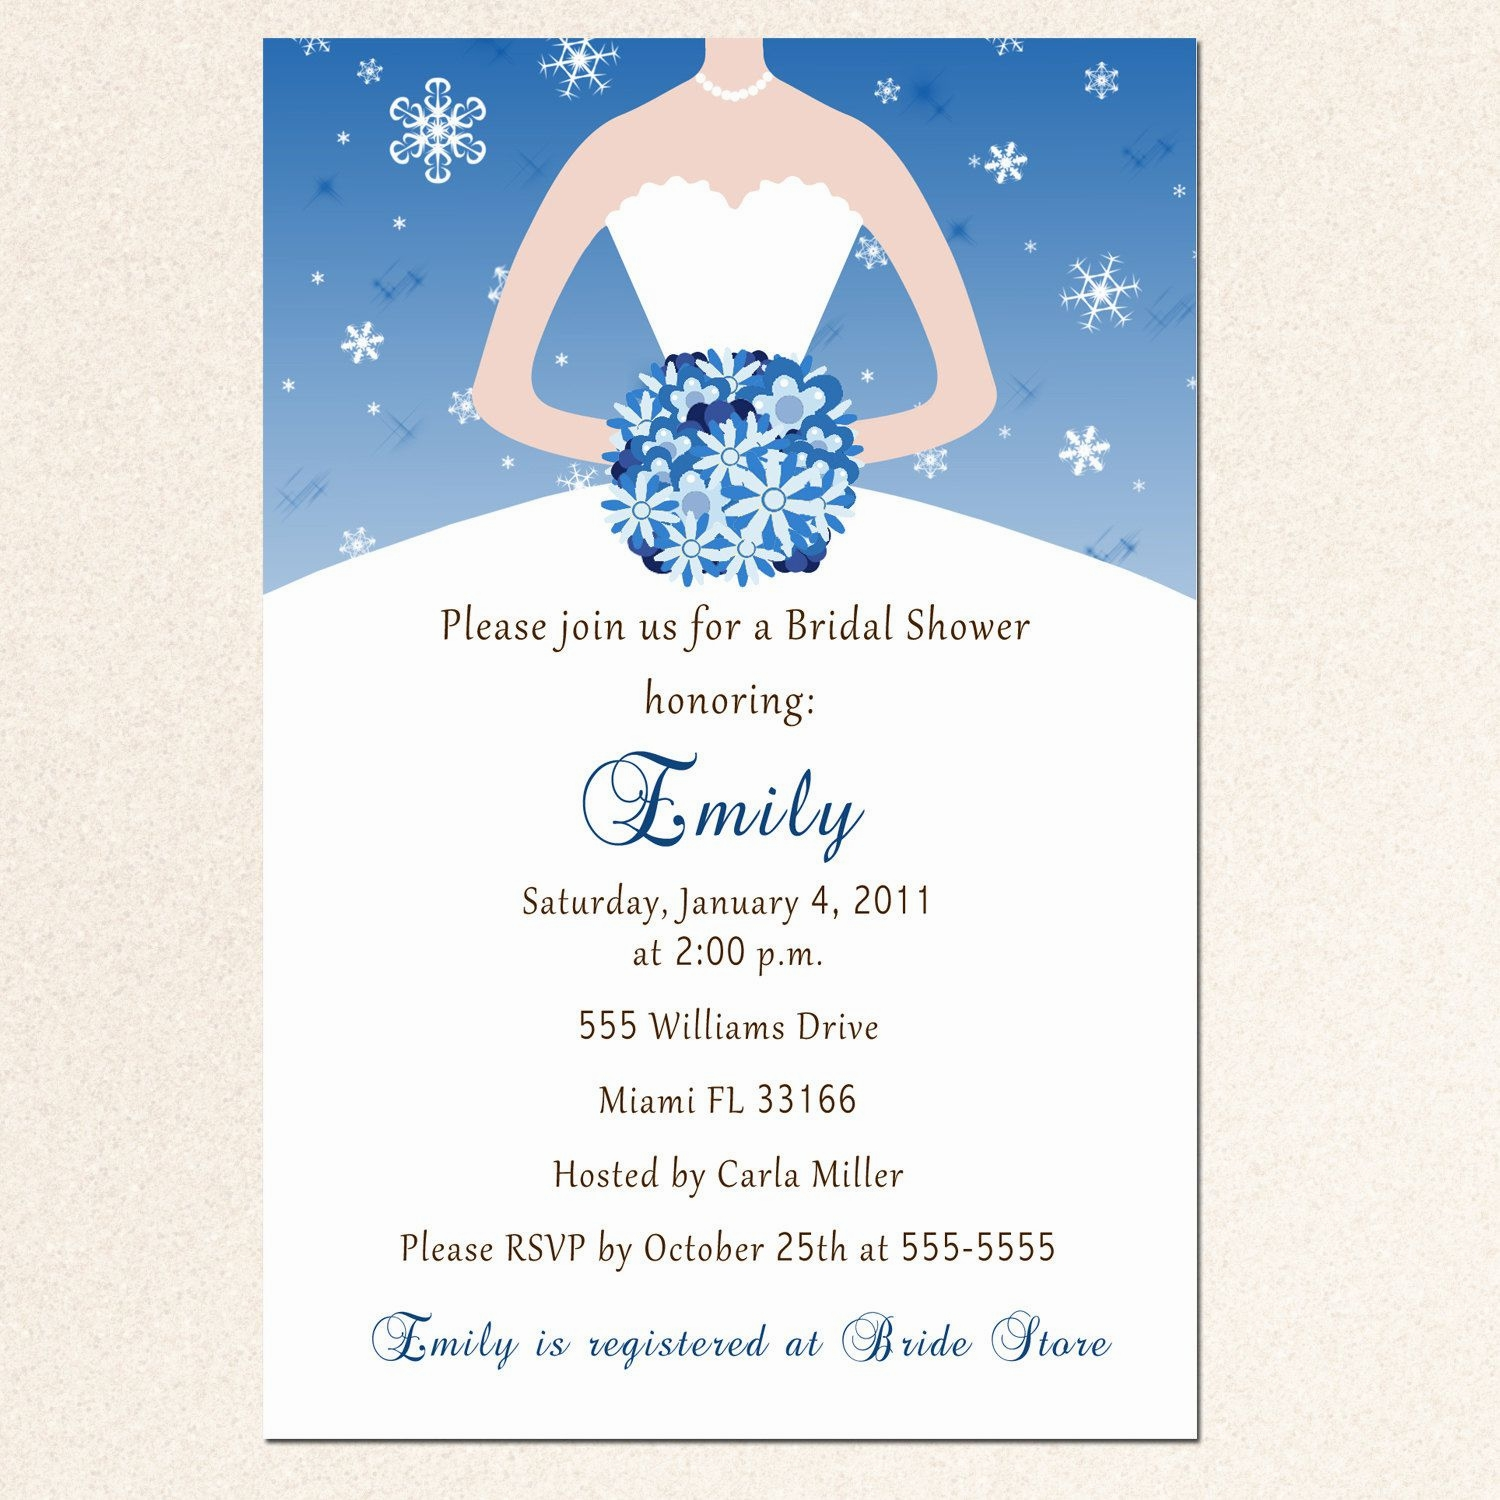 quinceanera invitation samples with Lovely Template To Make Great Invitations Sample